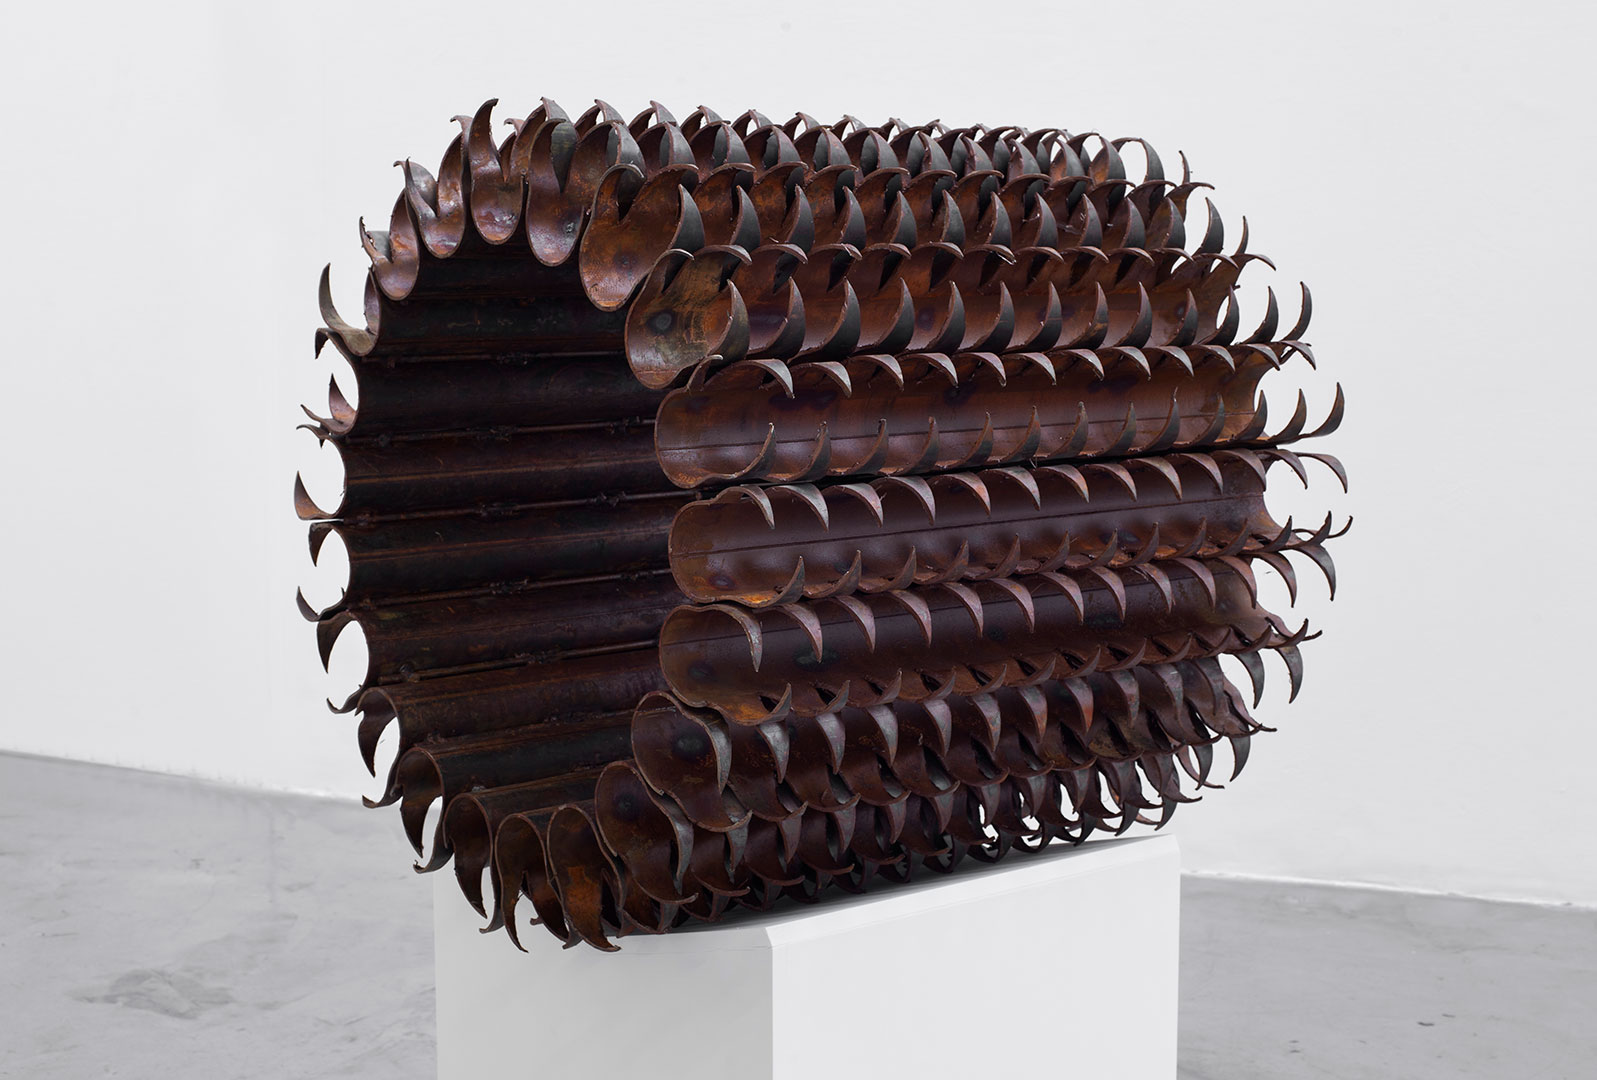 Untitled | 2018 | Iron pipes | 70 x 70 x 70 cm